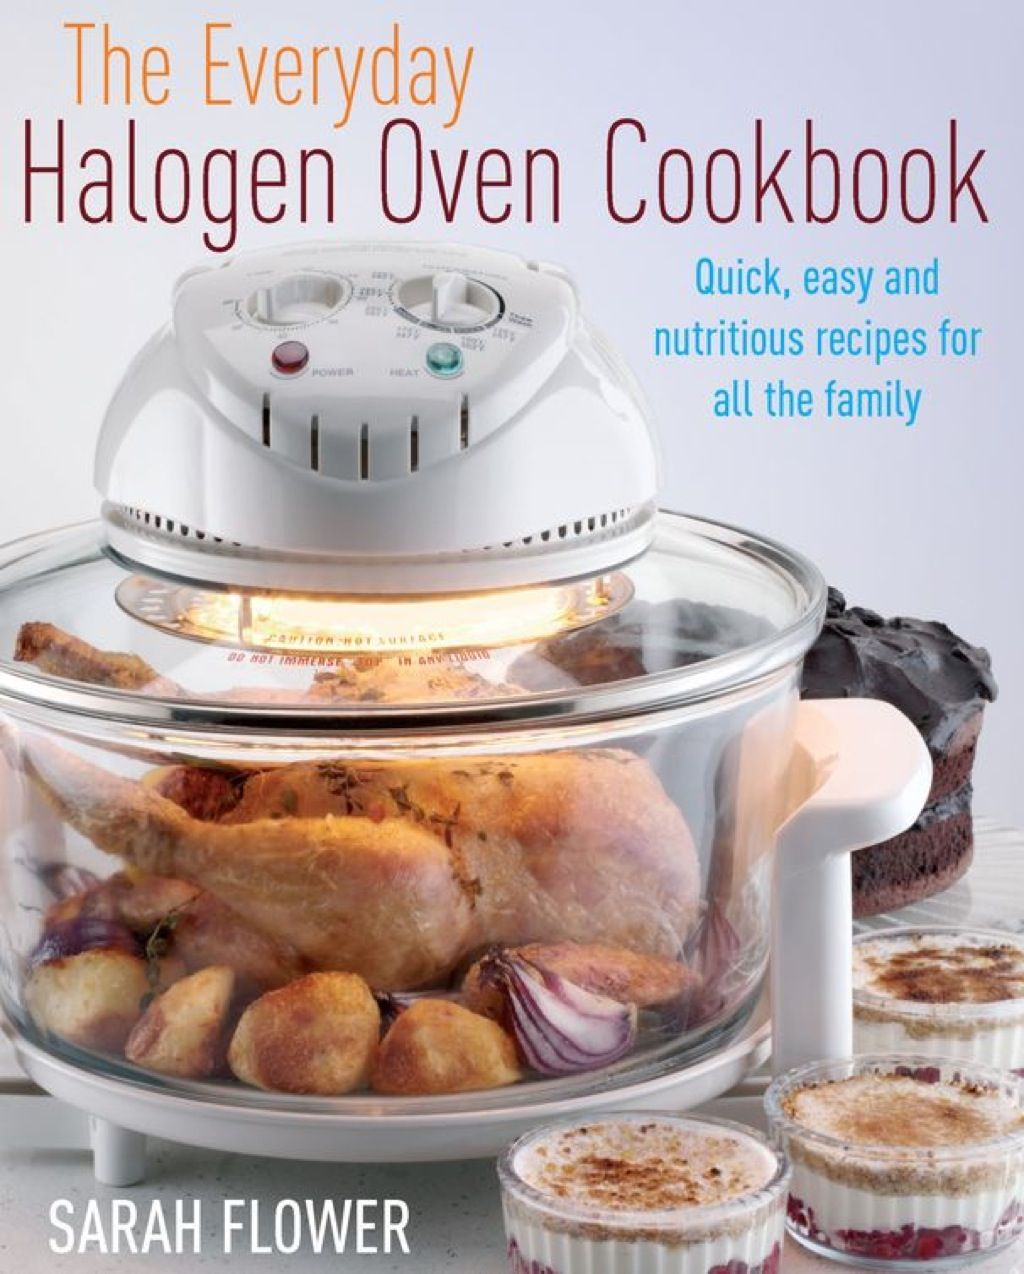 The Everyday Halogen Oven Cookbook Ebook Convection Oven